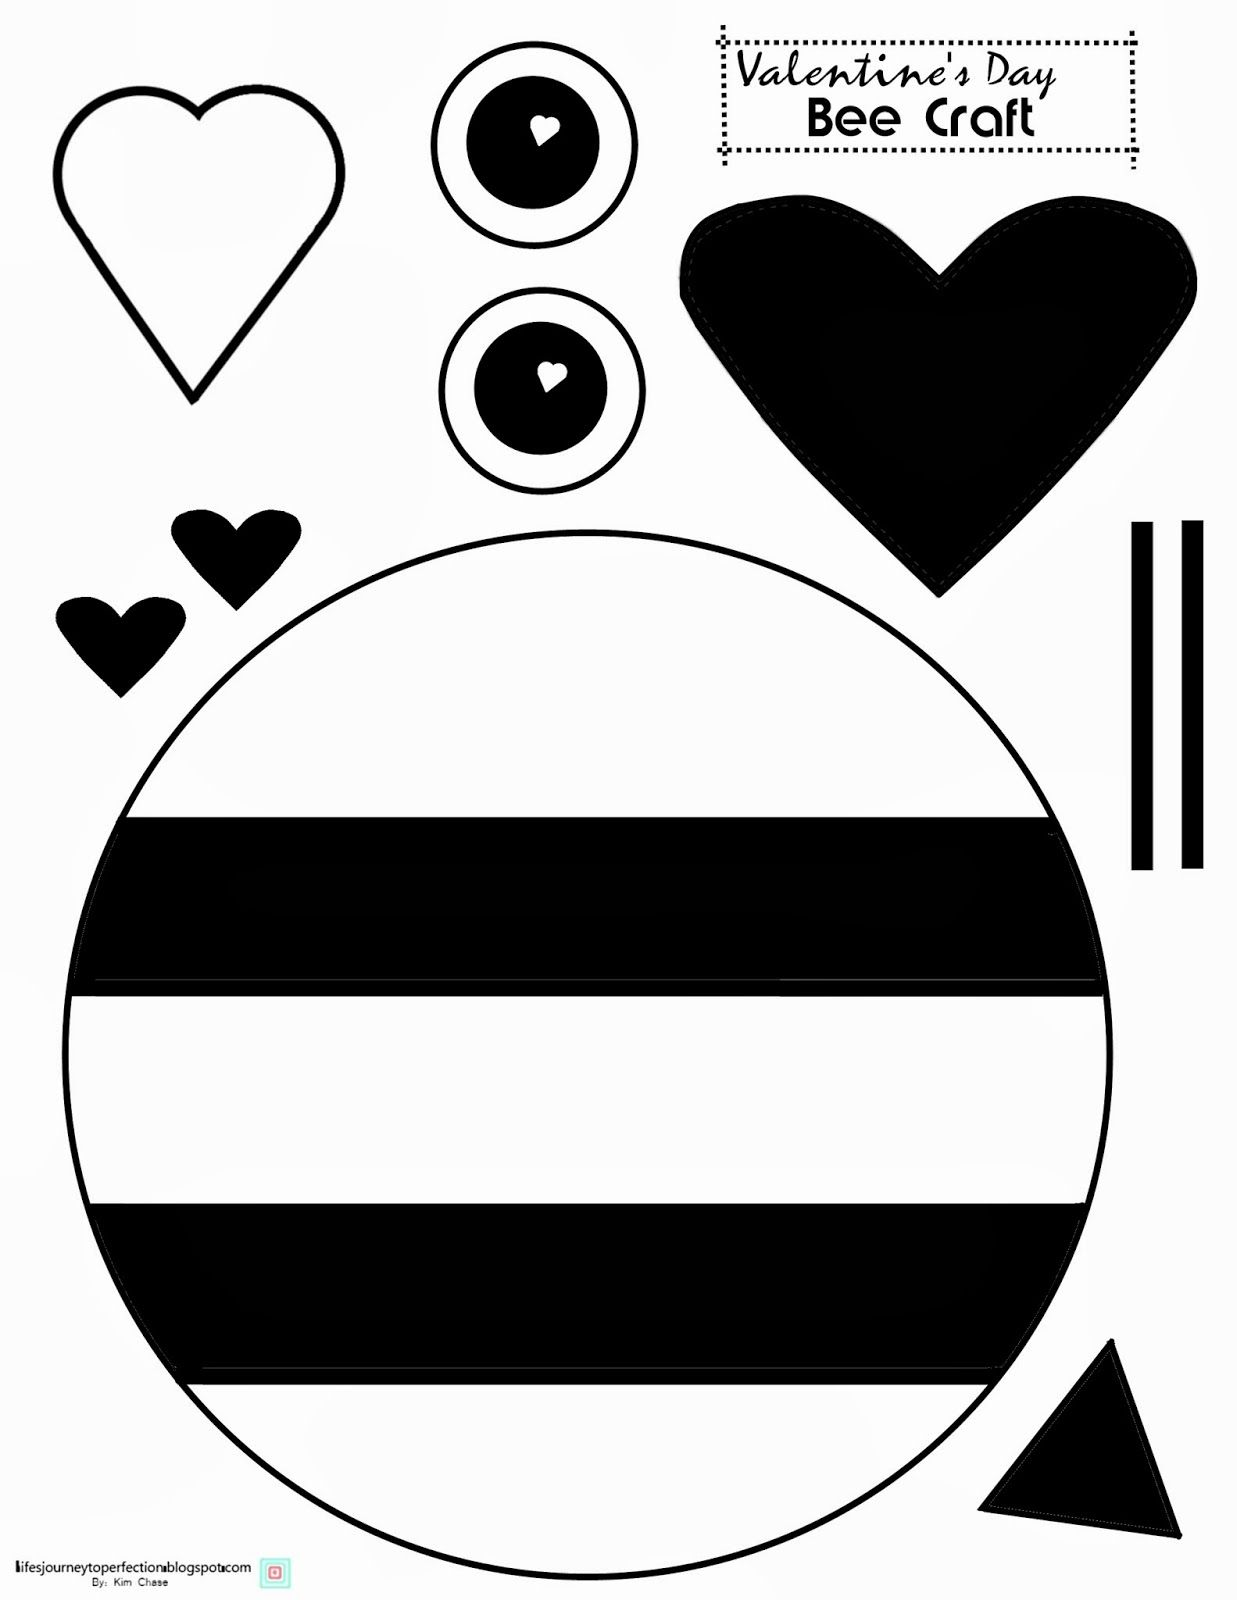 image regarding Printable Valentines Crafts referred to as Valentines Working day Bee Craft Printable Valentines Bee